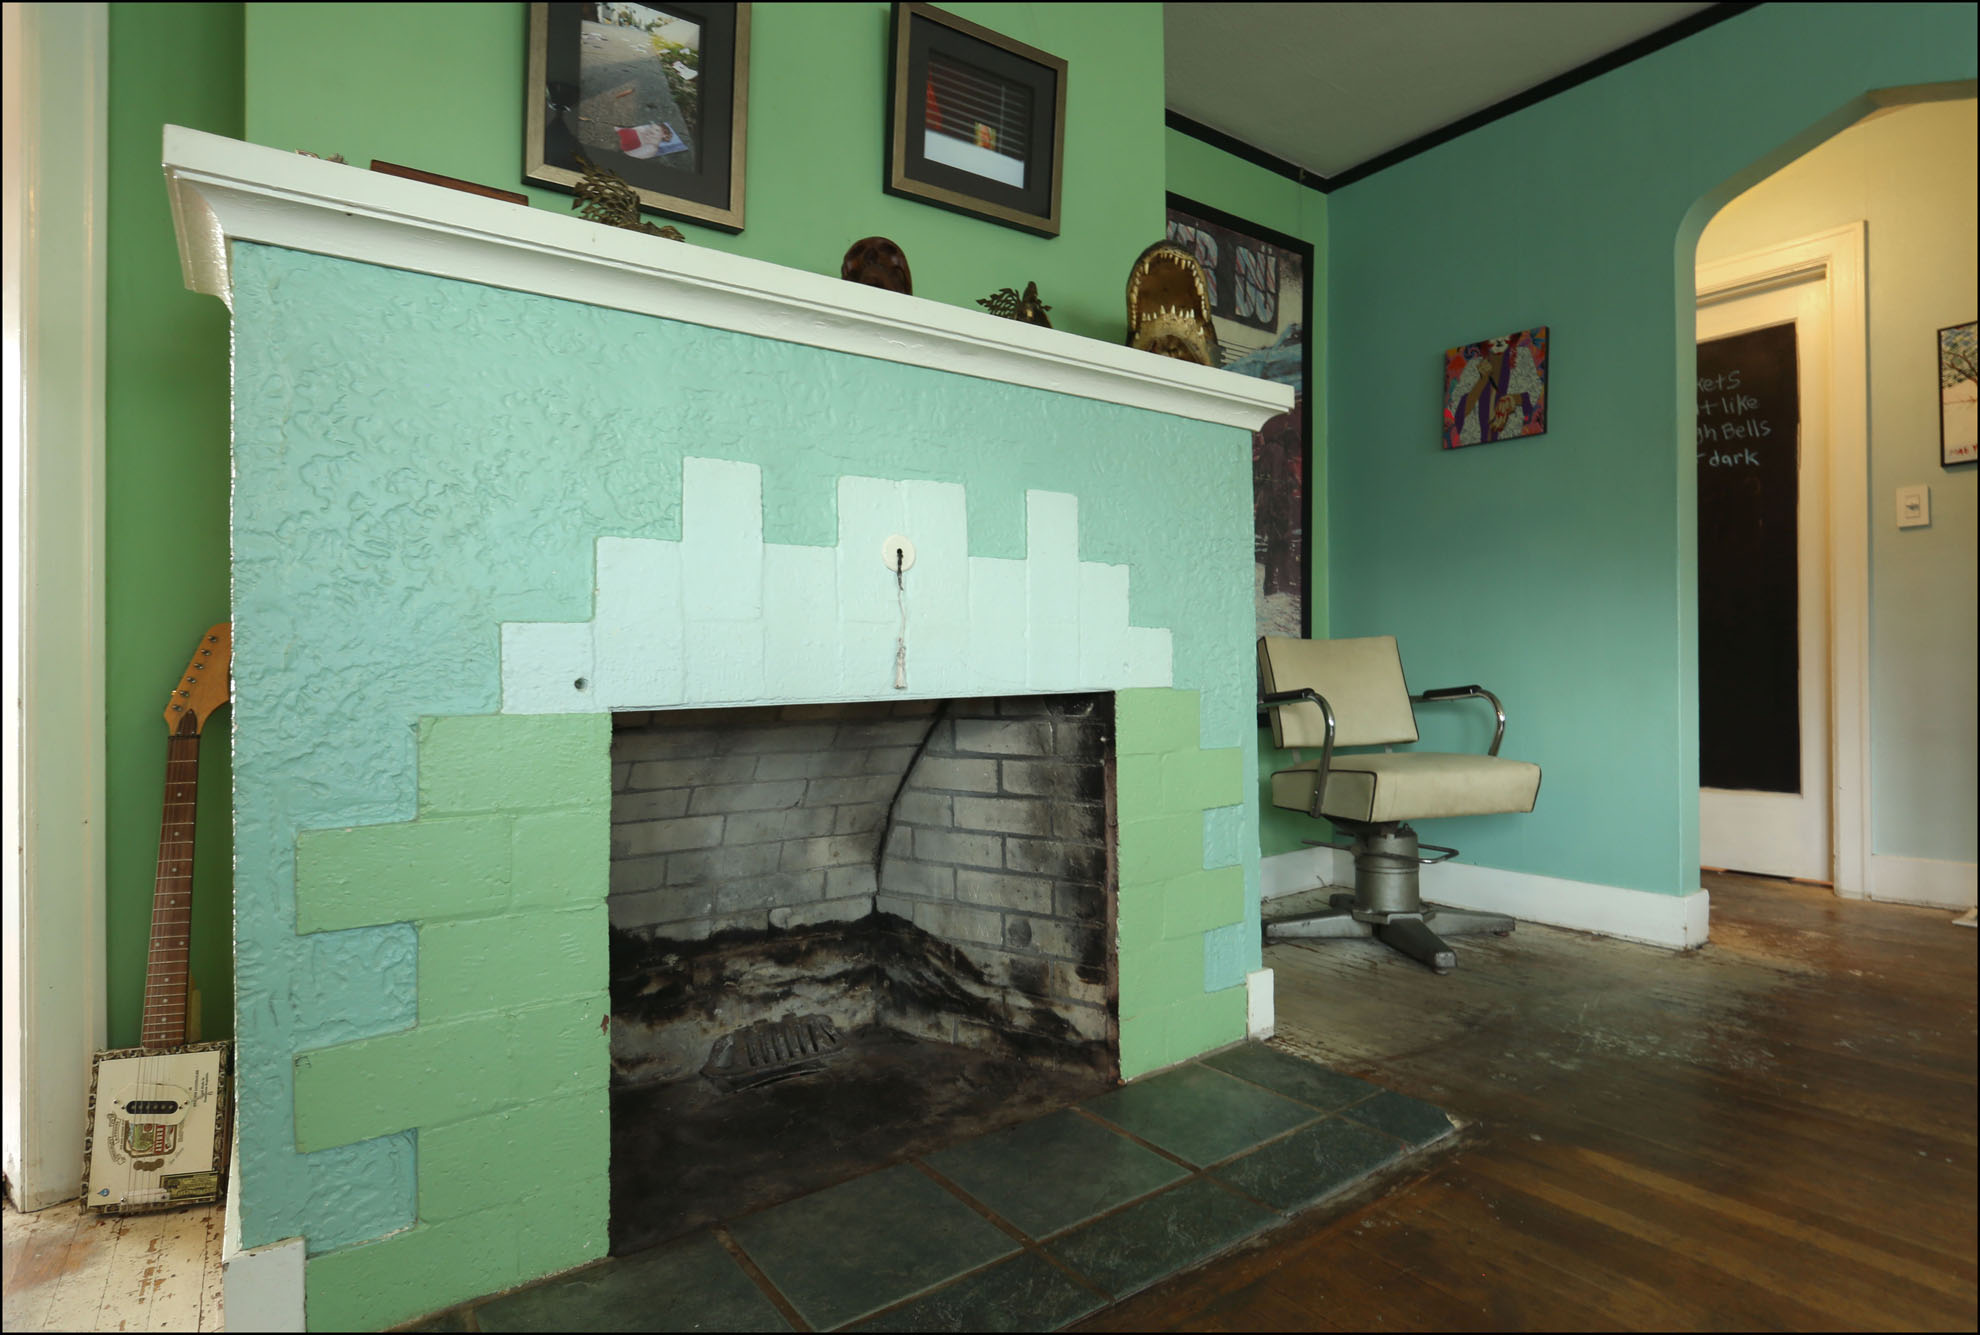 Large fireplace adds character to the living room.